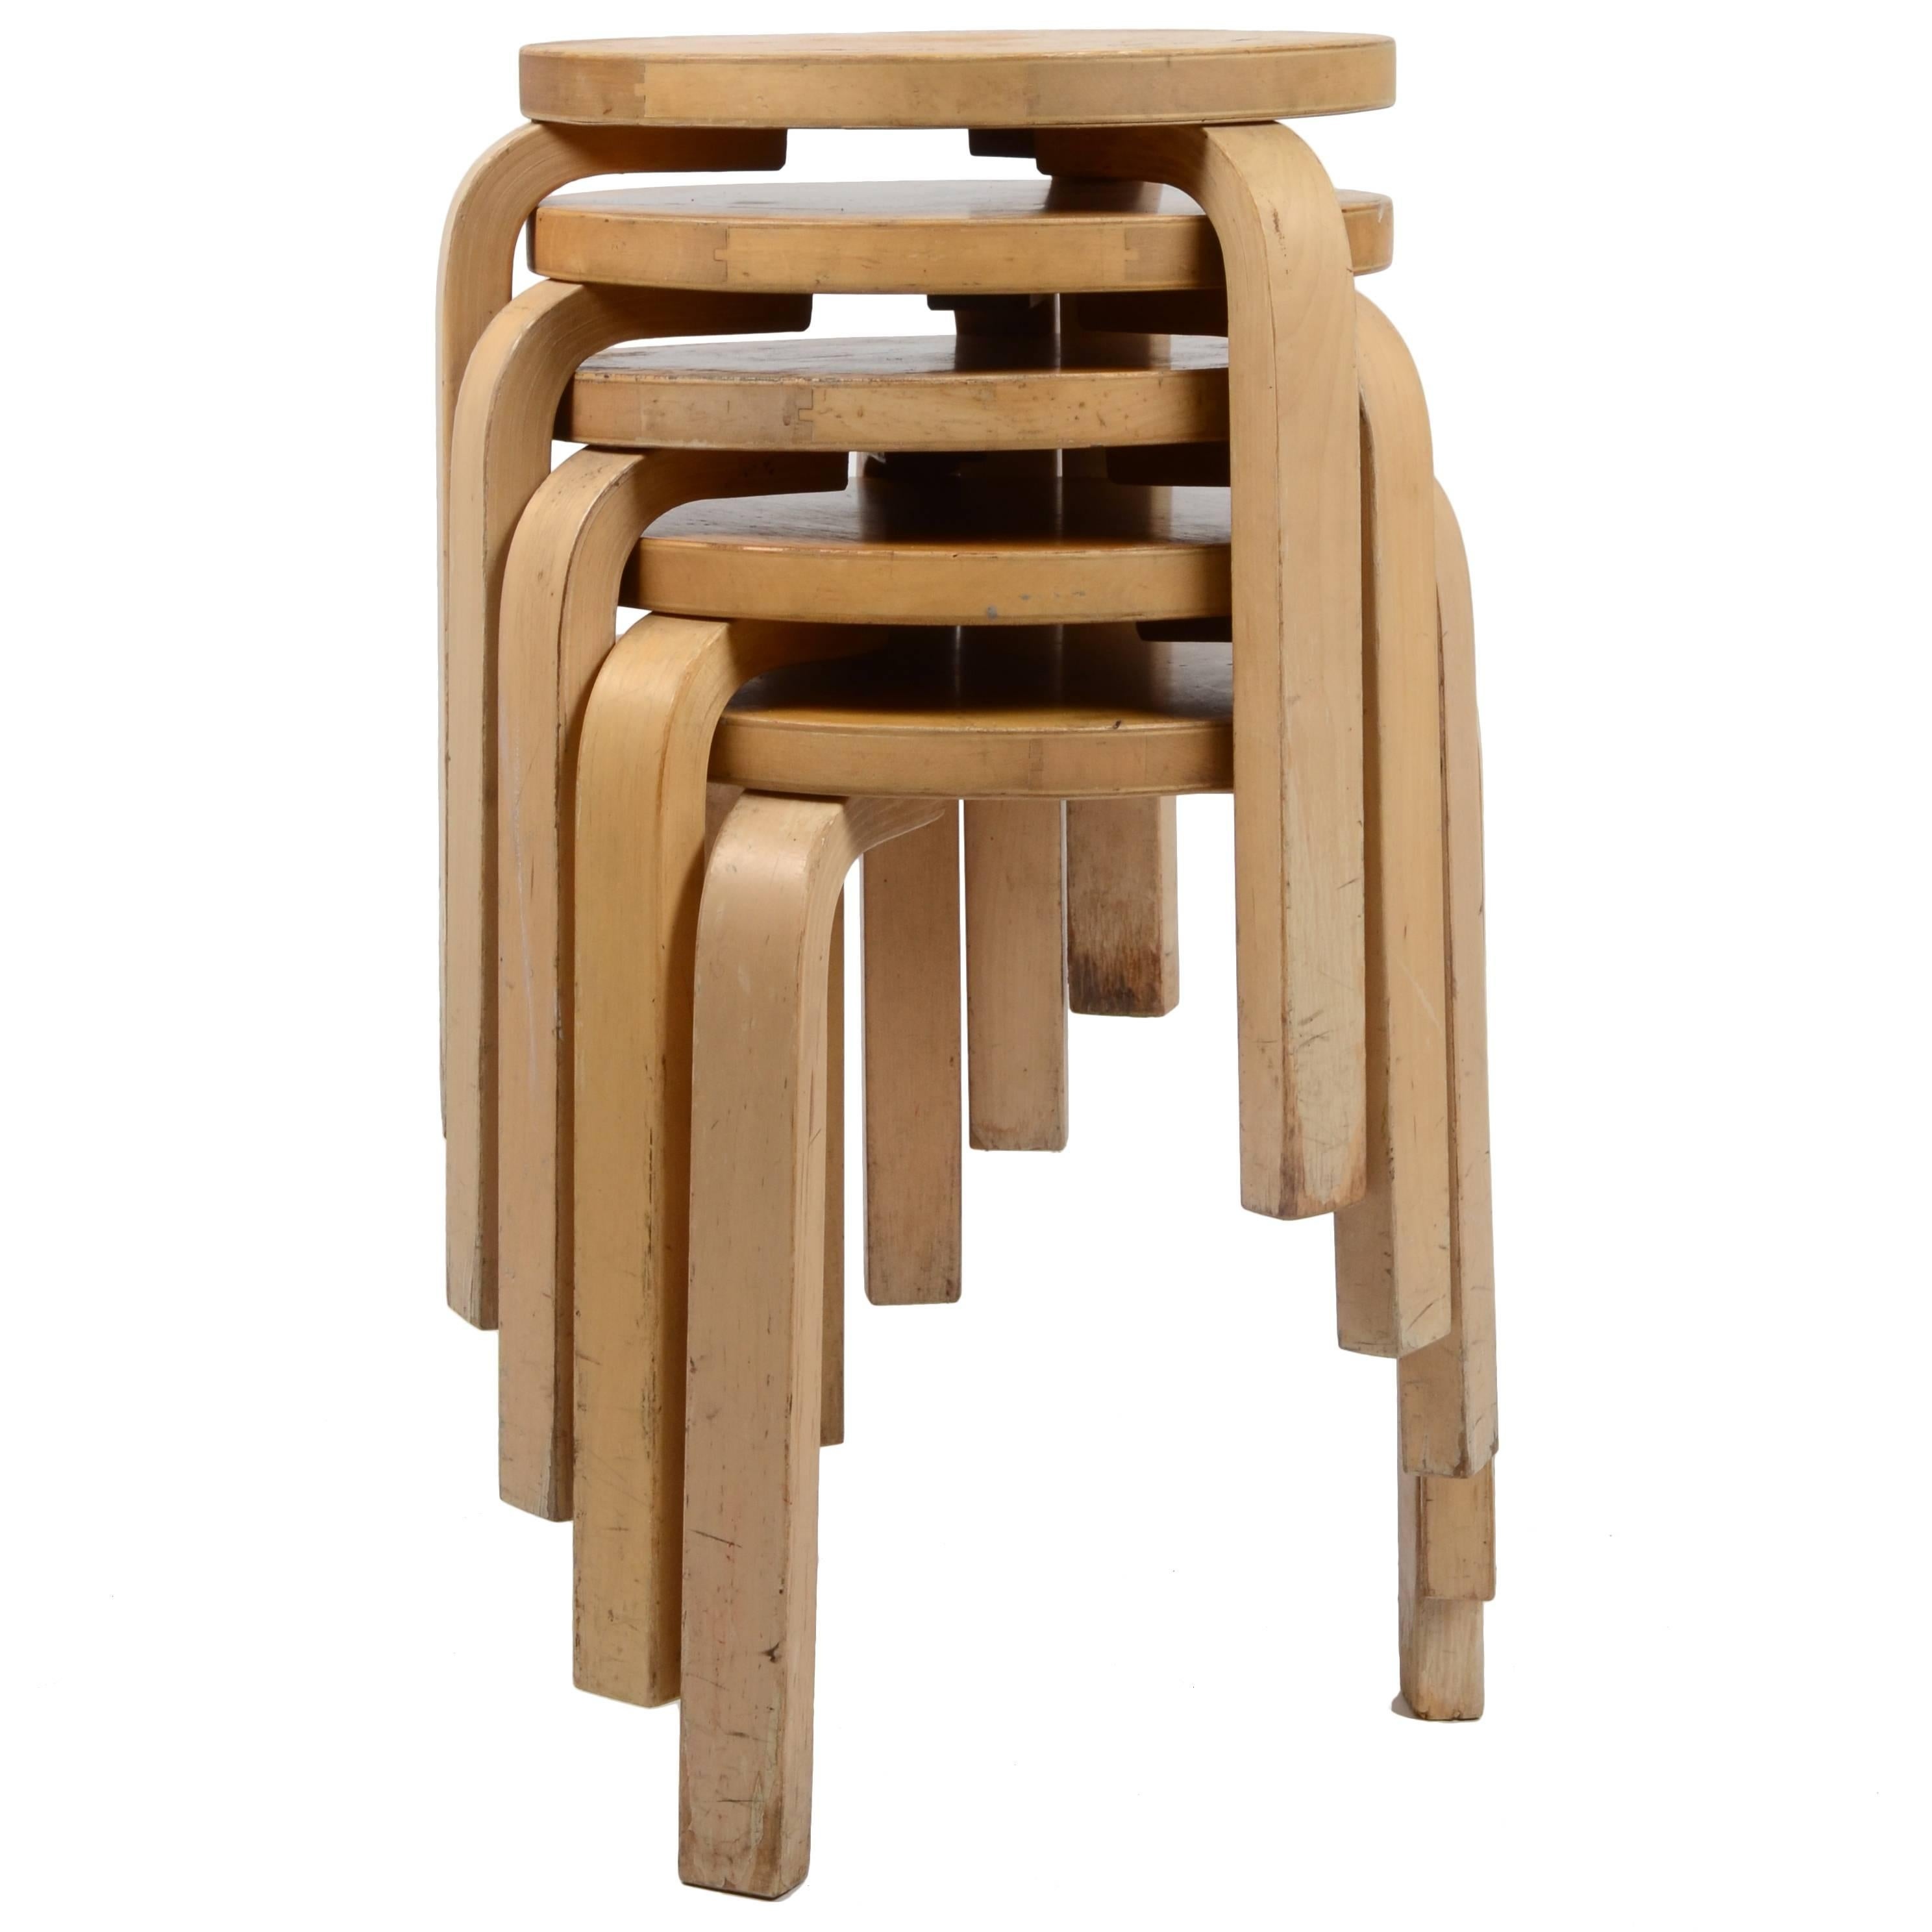 Five Stacking Stools, Model 60, by Alvar Aalto, Designed in 1933